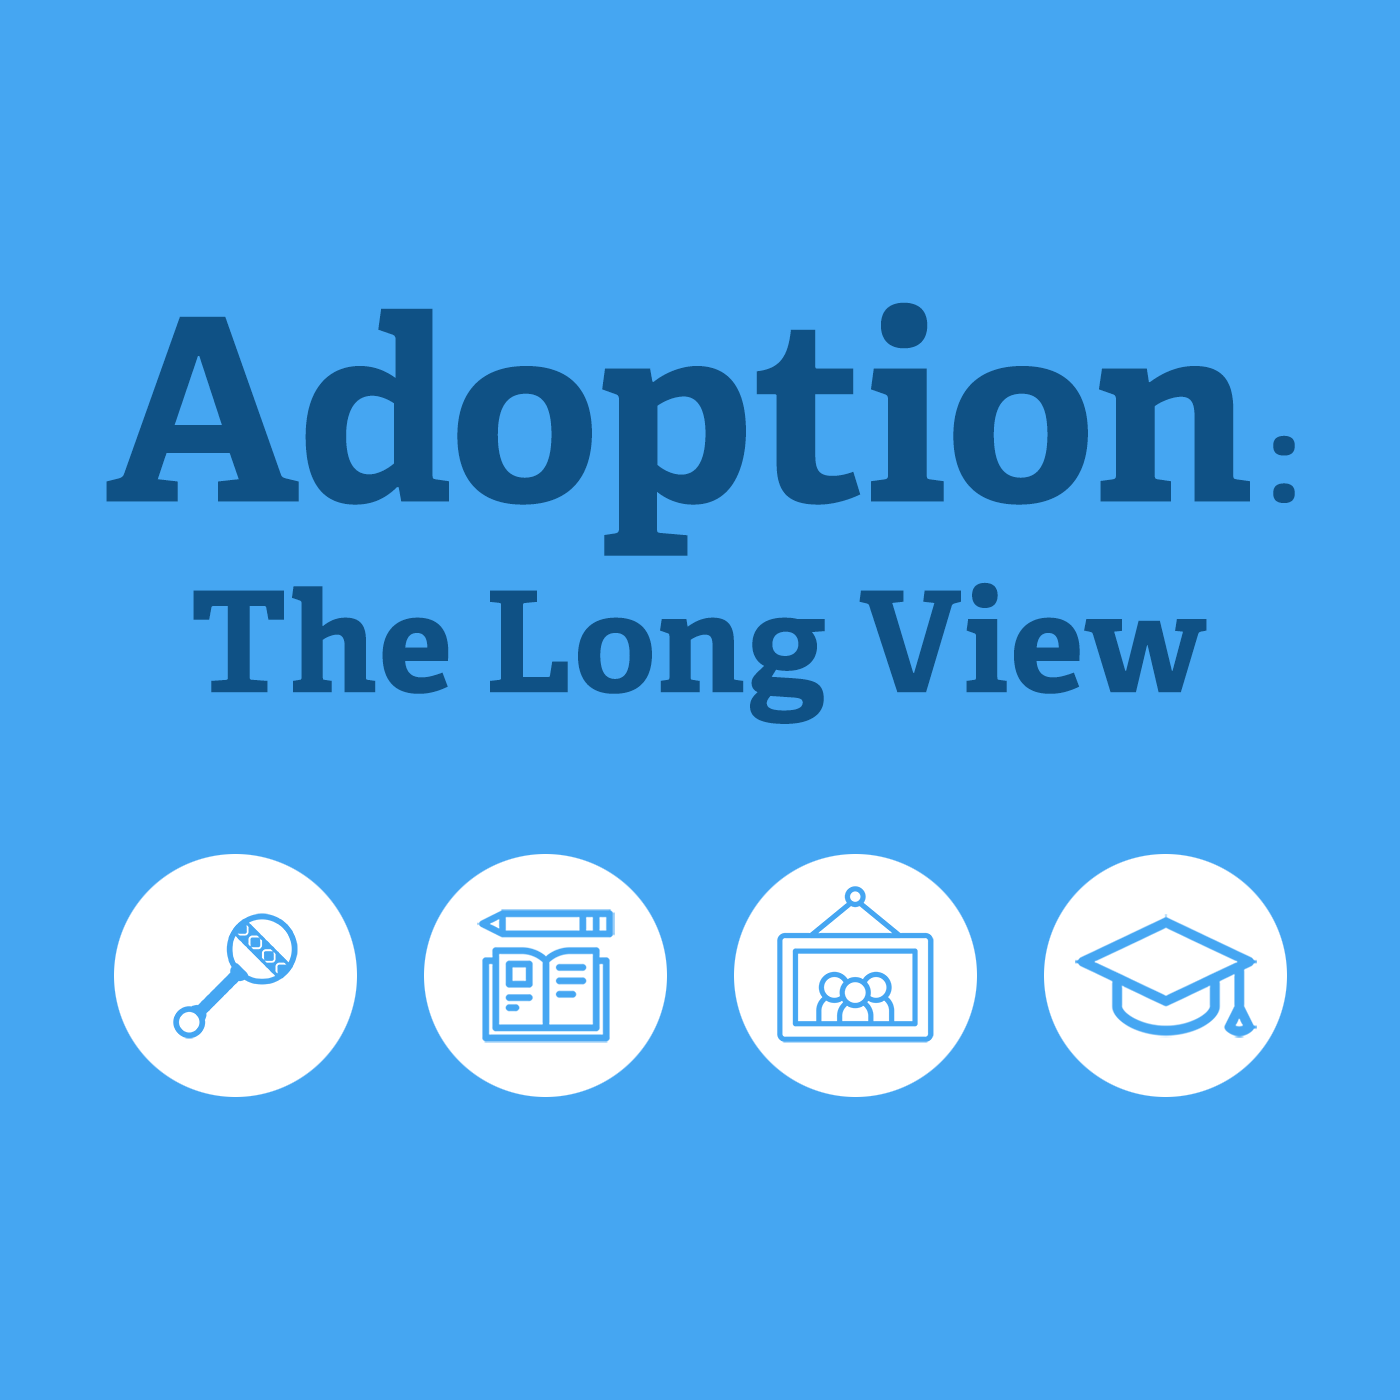 Adoption the long view